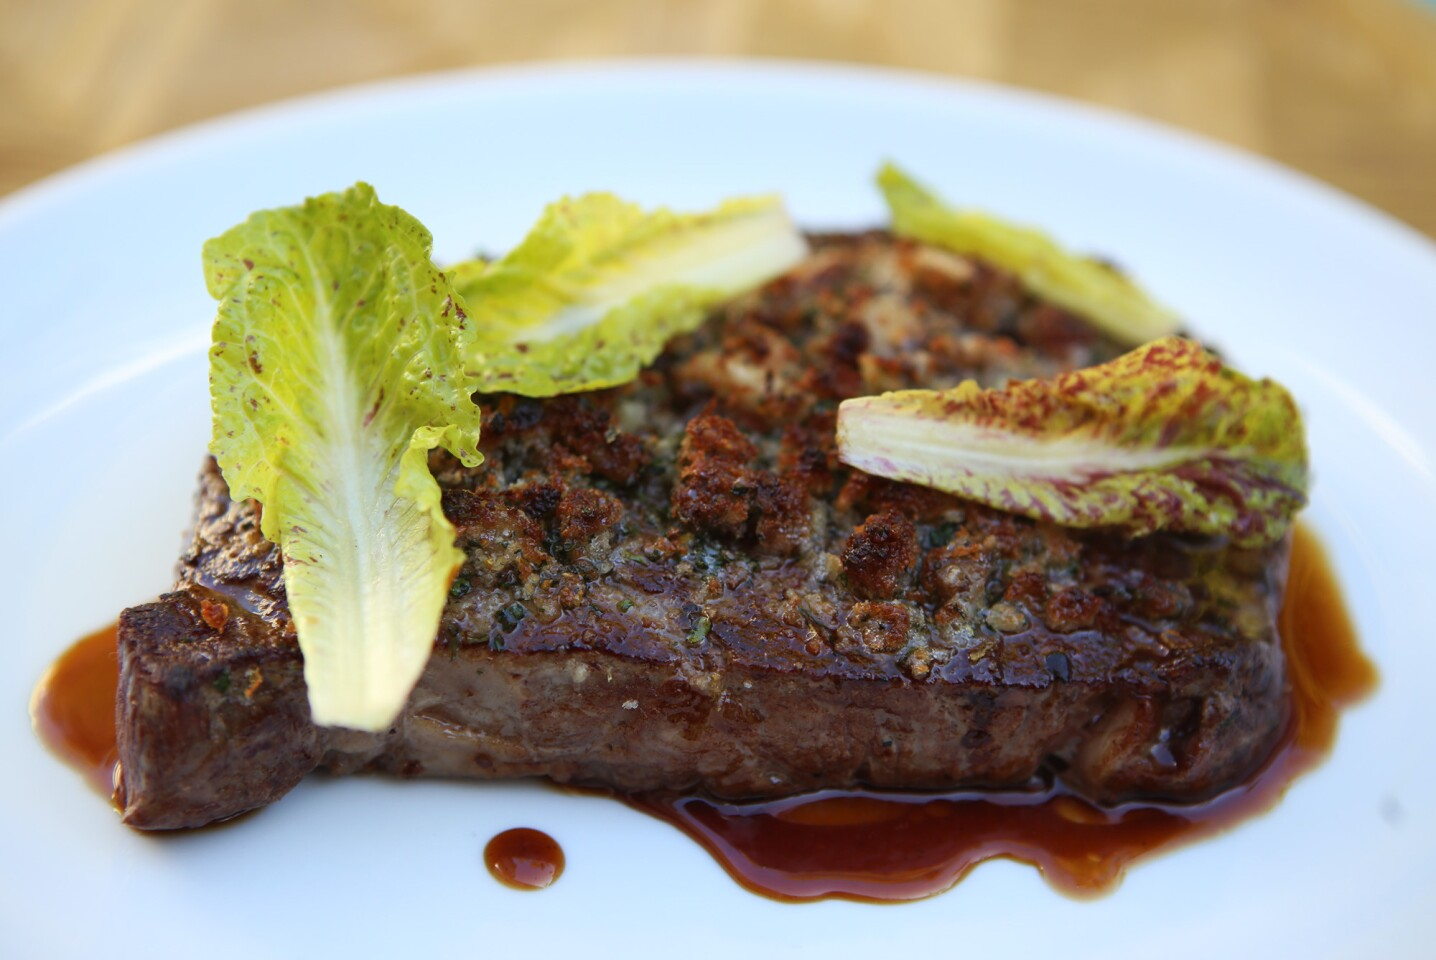 A grilled 12-ounce Piedmontese rib-eye steak is on the menu at Viviane restaurant, in the Avalon Hotel in Beverly Hills. Viviane features dishes by award-winning chef Michael Hung.